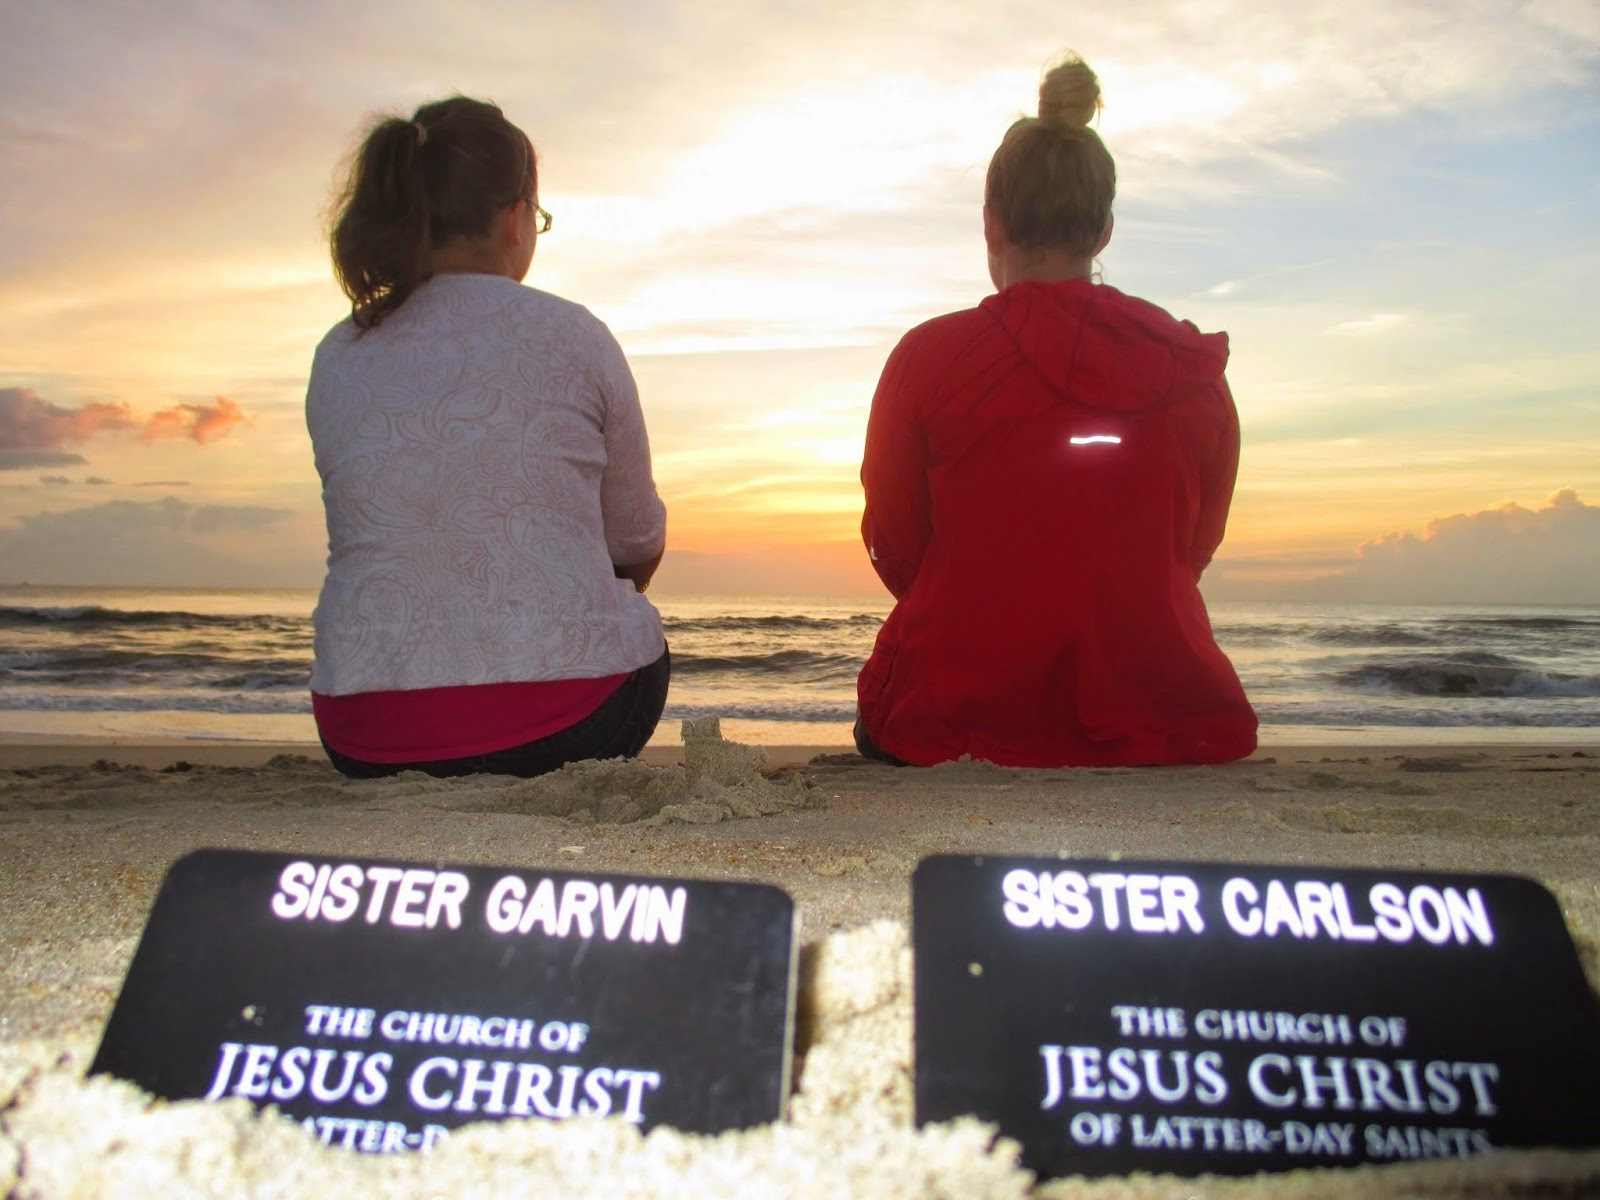 Sisters Garvin and Carlson